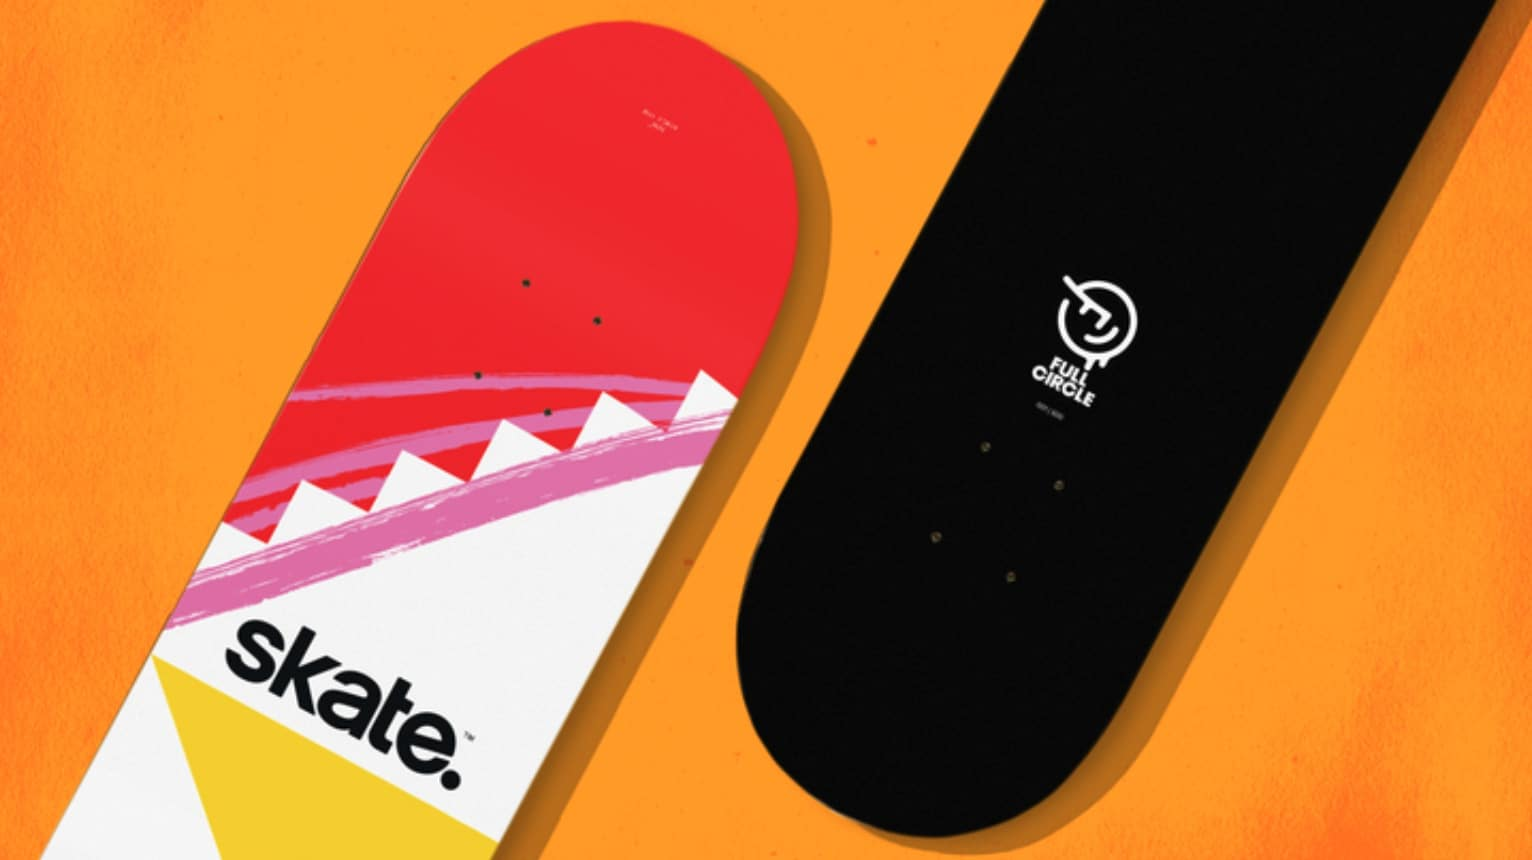 Skate is coming to PC for the first time